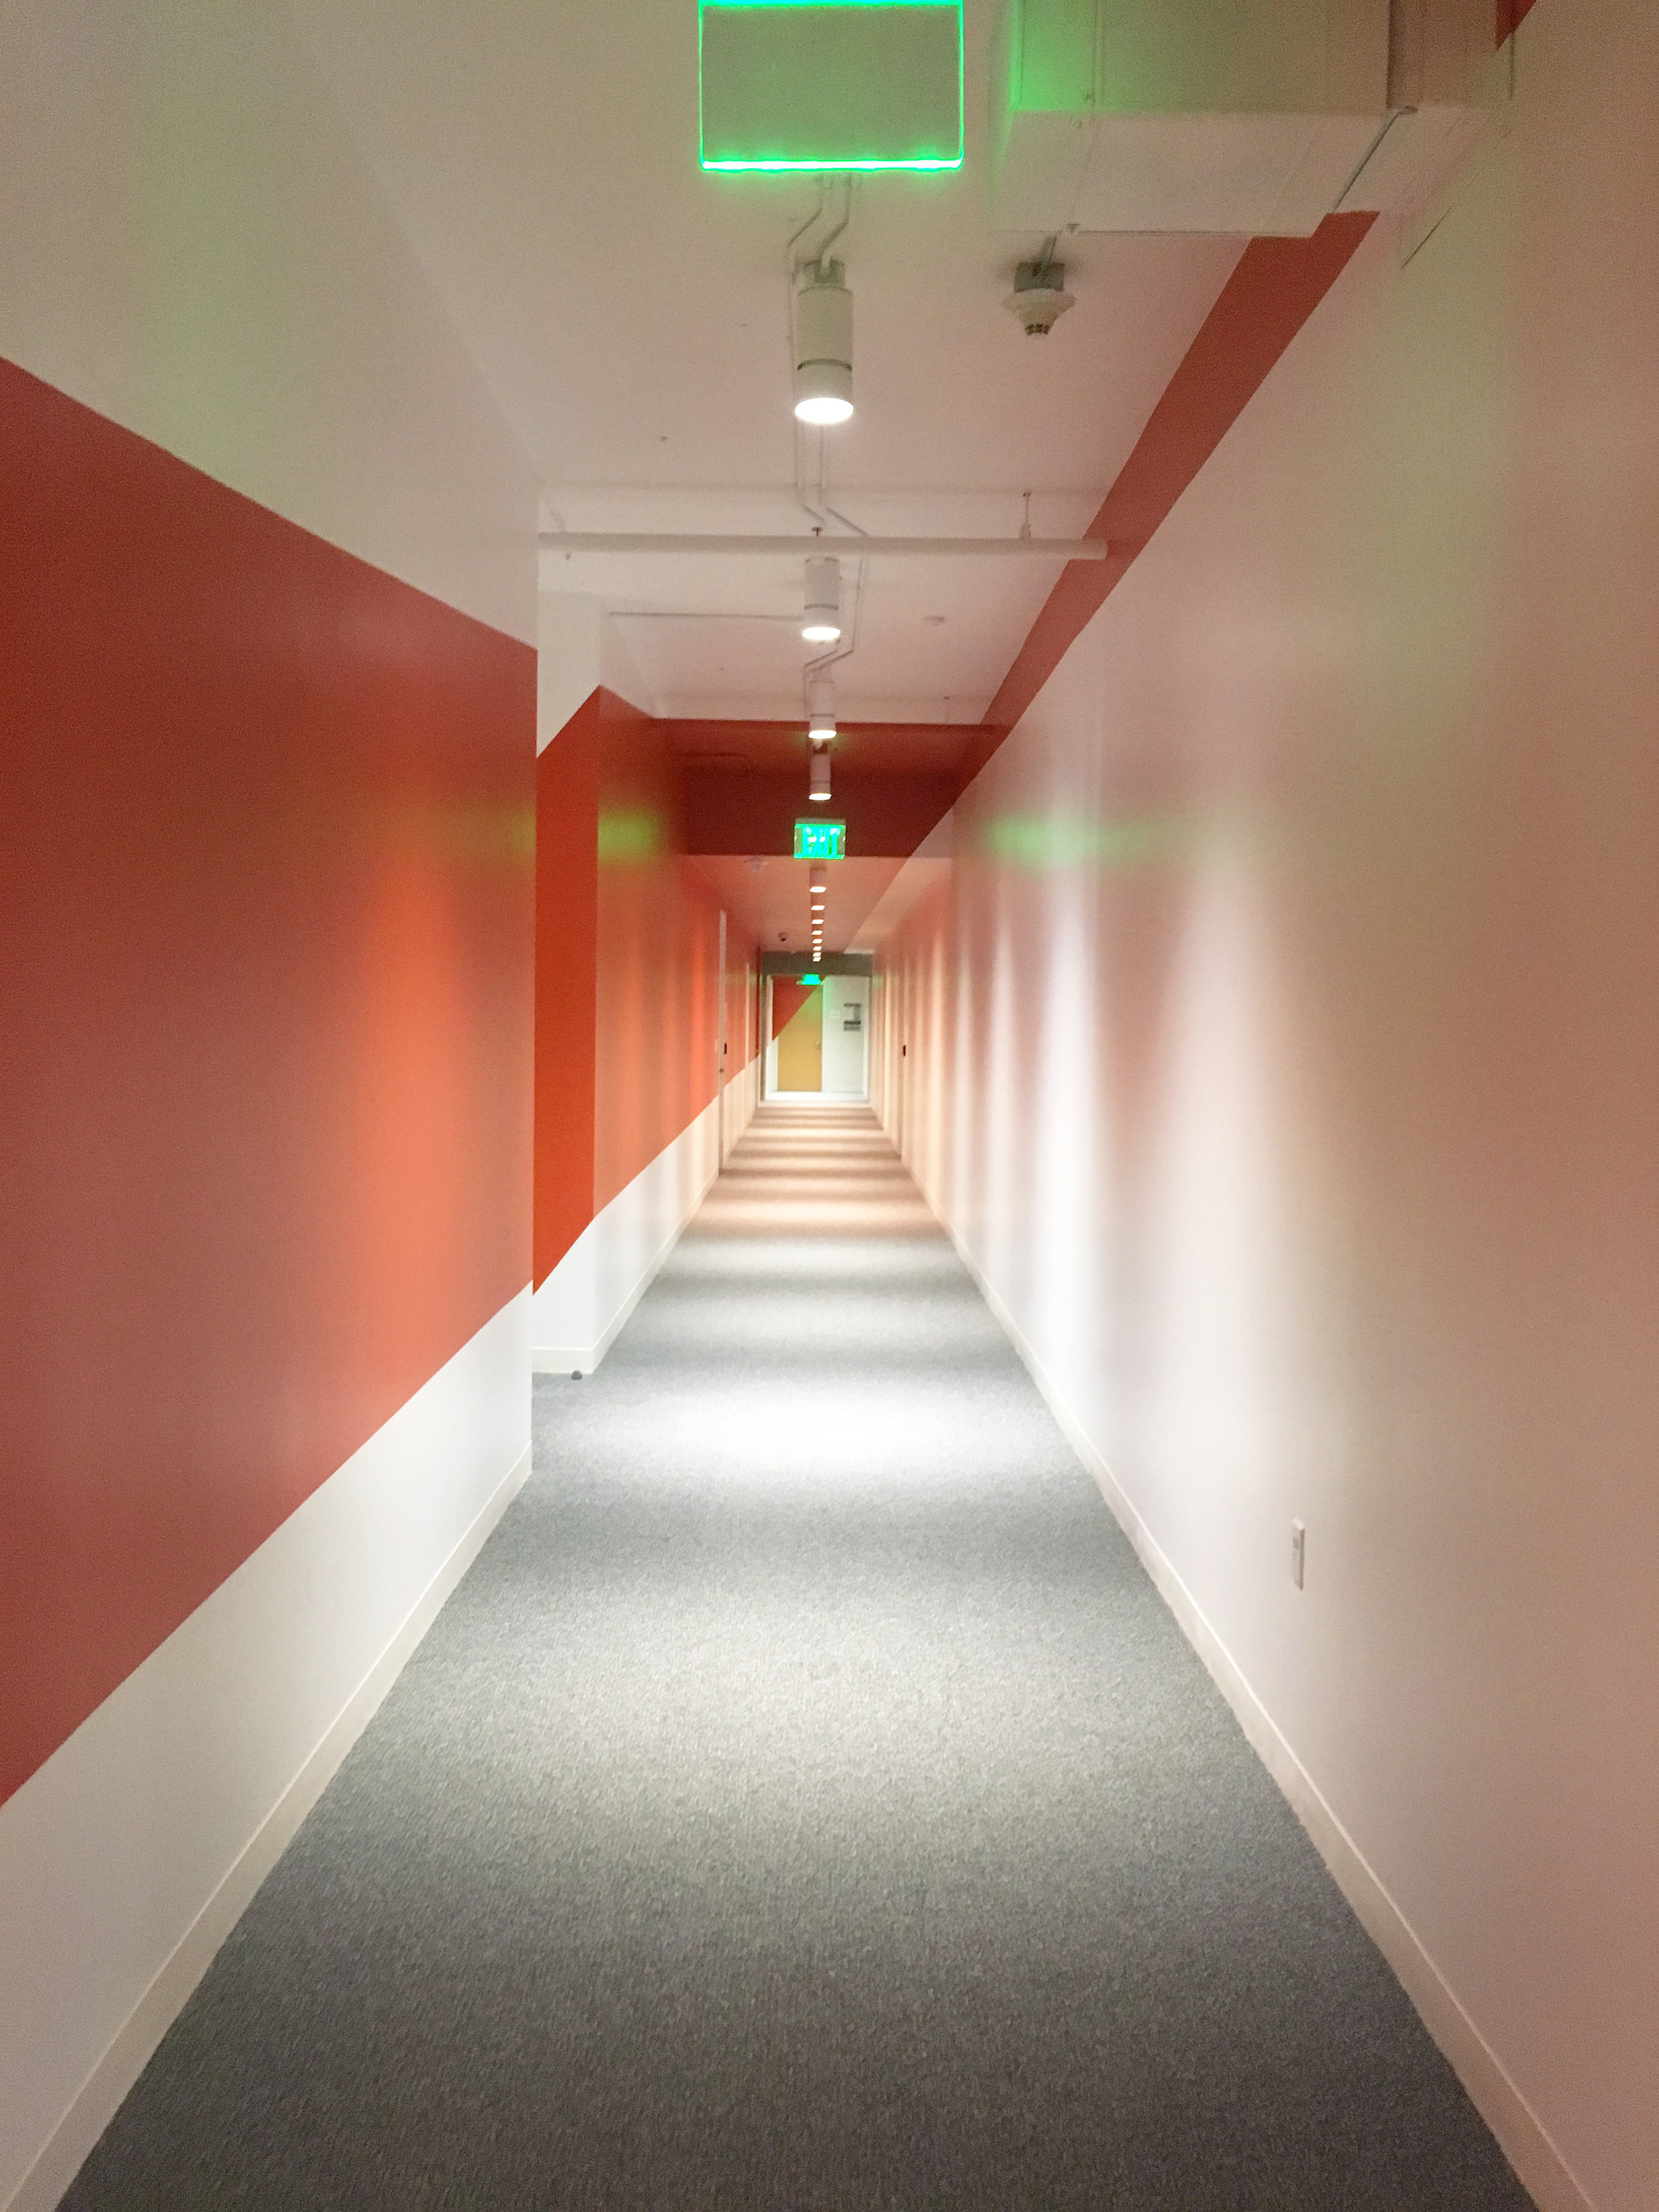 Office-commercial-mural-san-francisco-brex-wall-and-wall-mural-company_003.jpeg